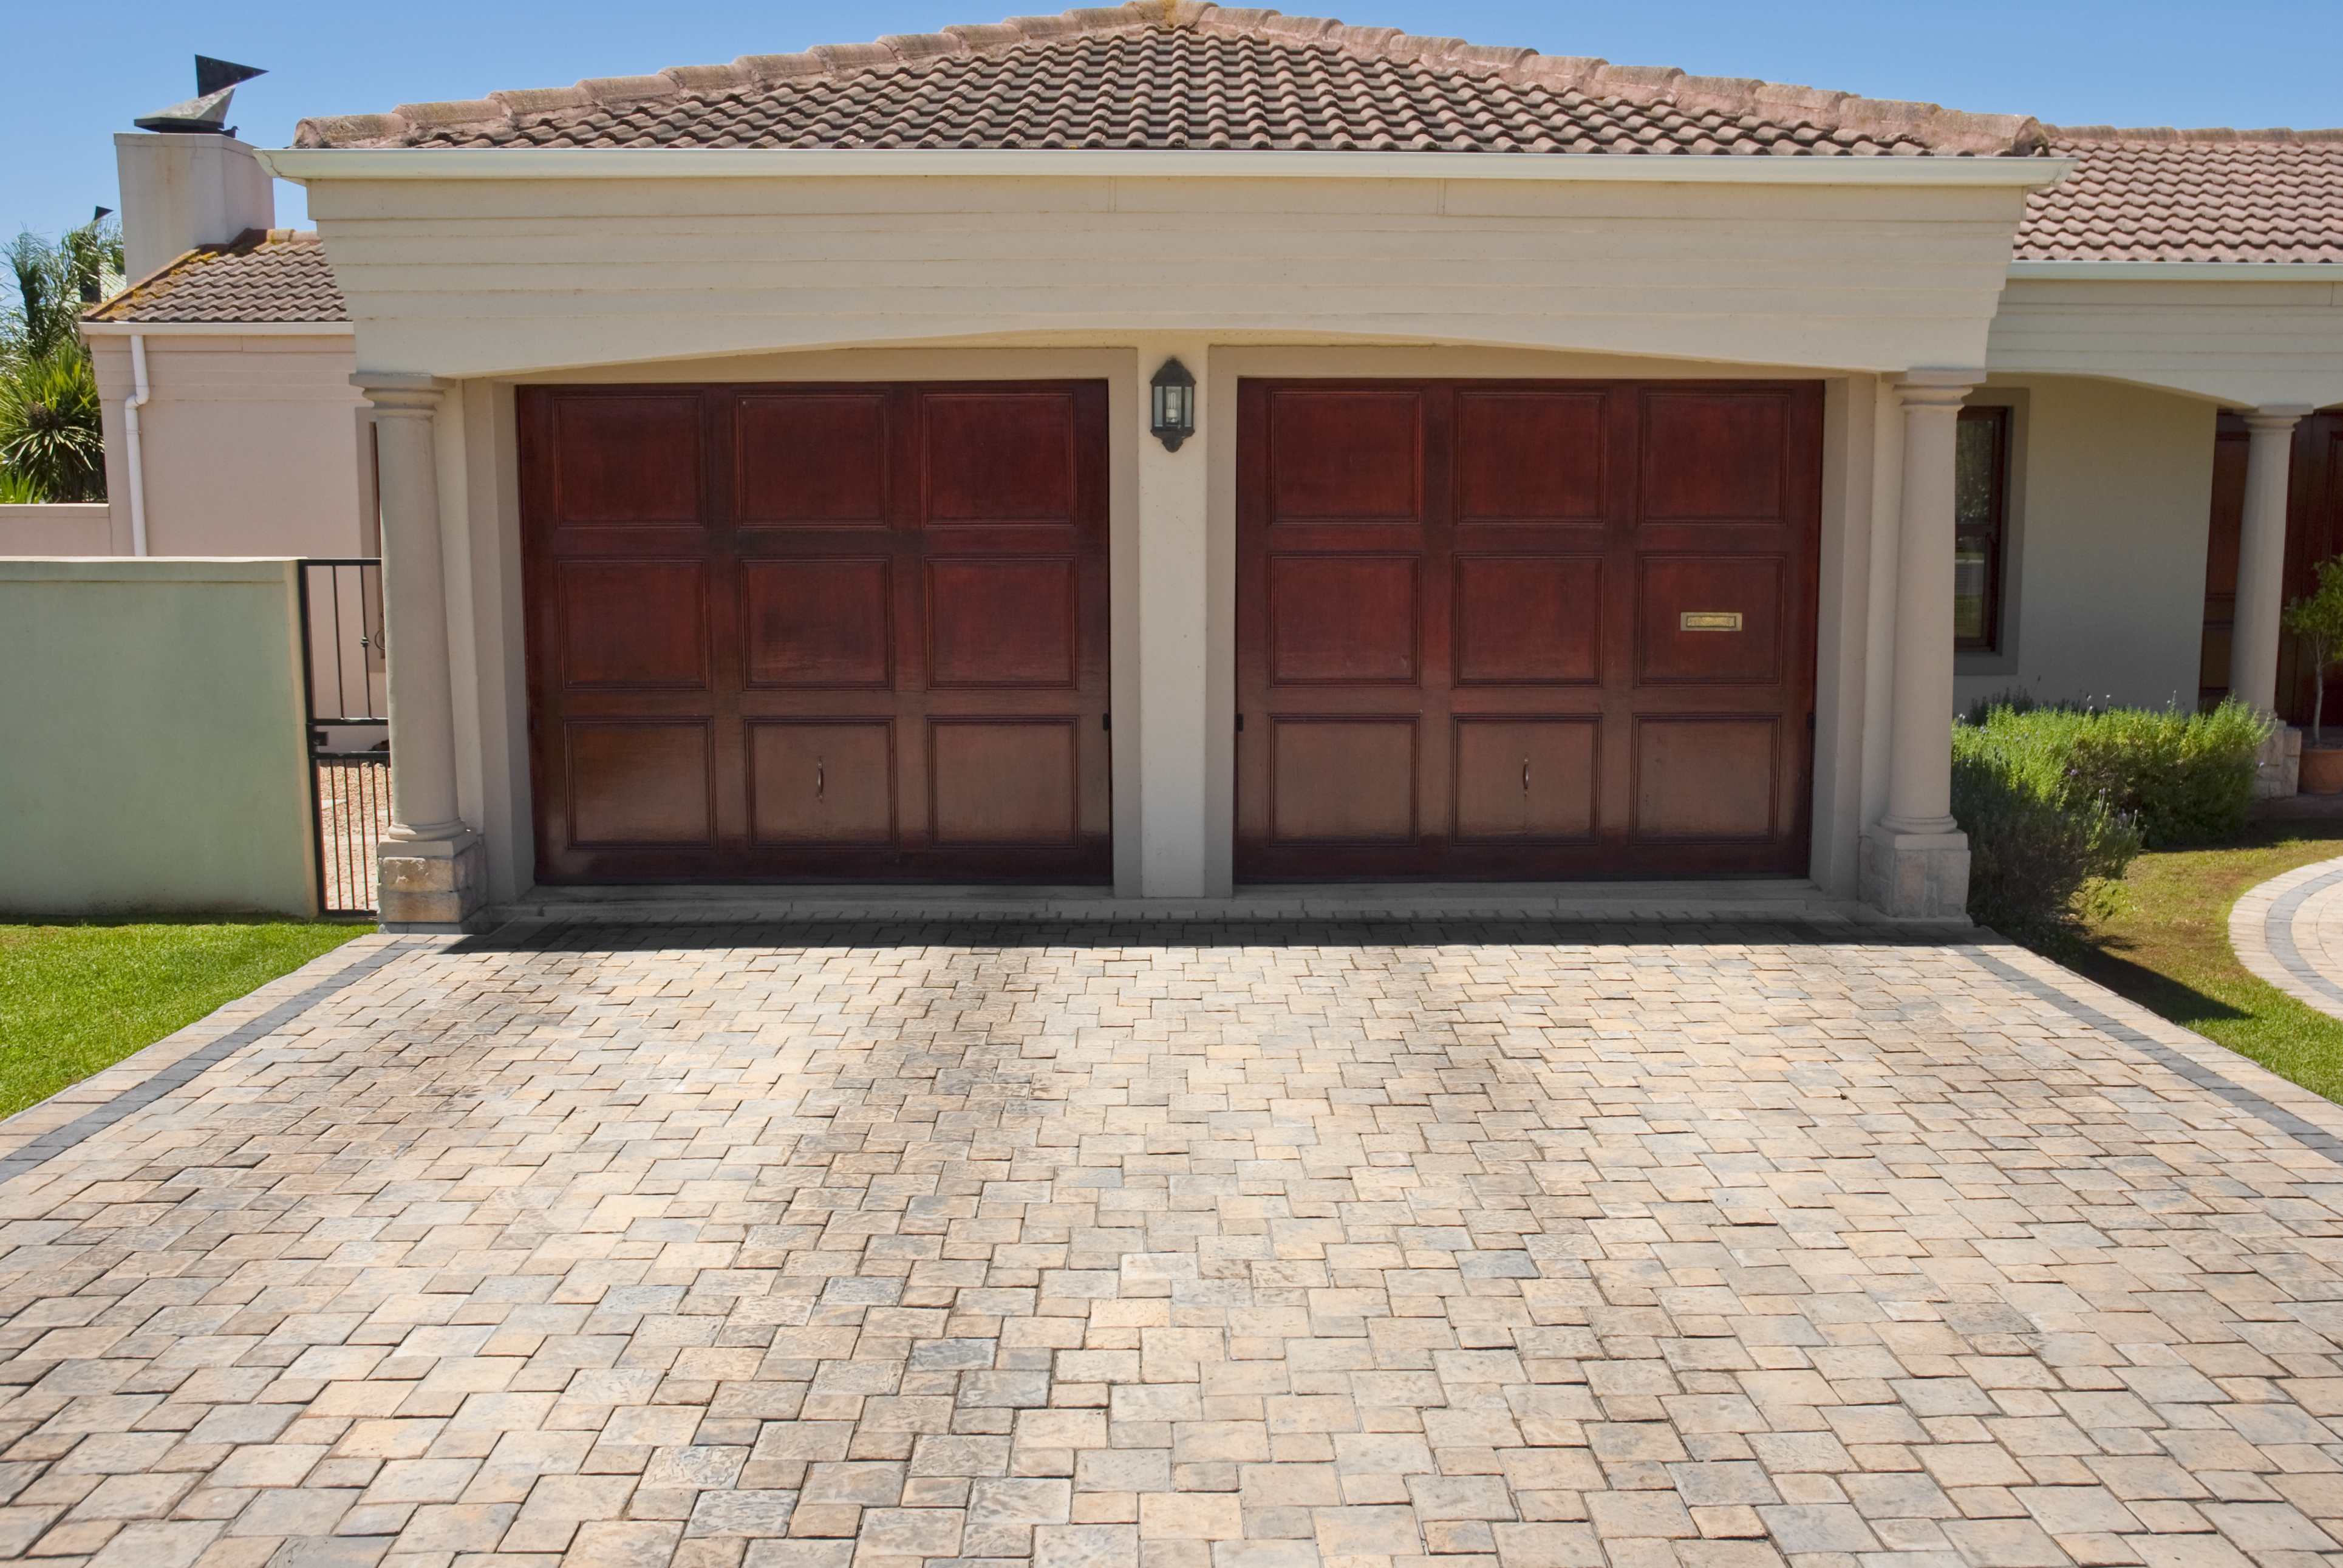 Wa garage door coupons in renton garage door services localsaver our trucks are always stocked so that techs can complete jobs in one visit no matter which brand garage door or garage door opener you have we can repair rubansaba